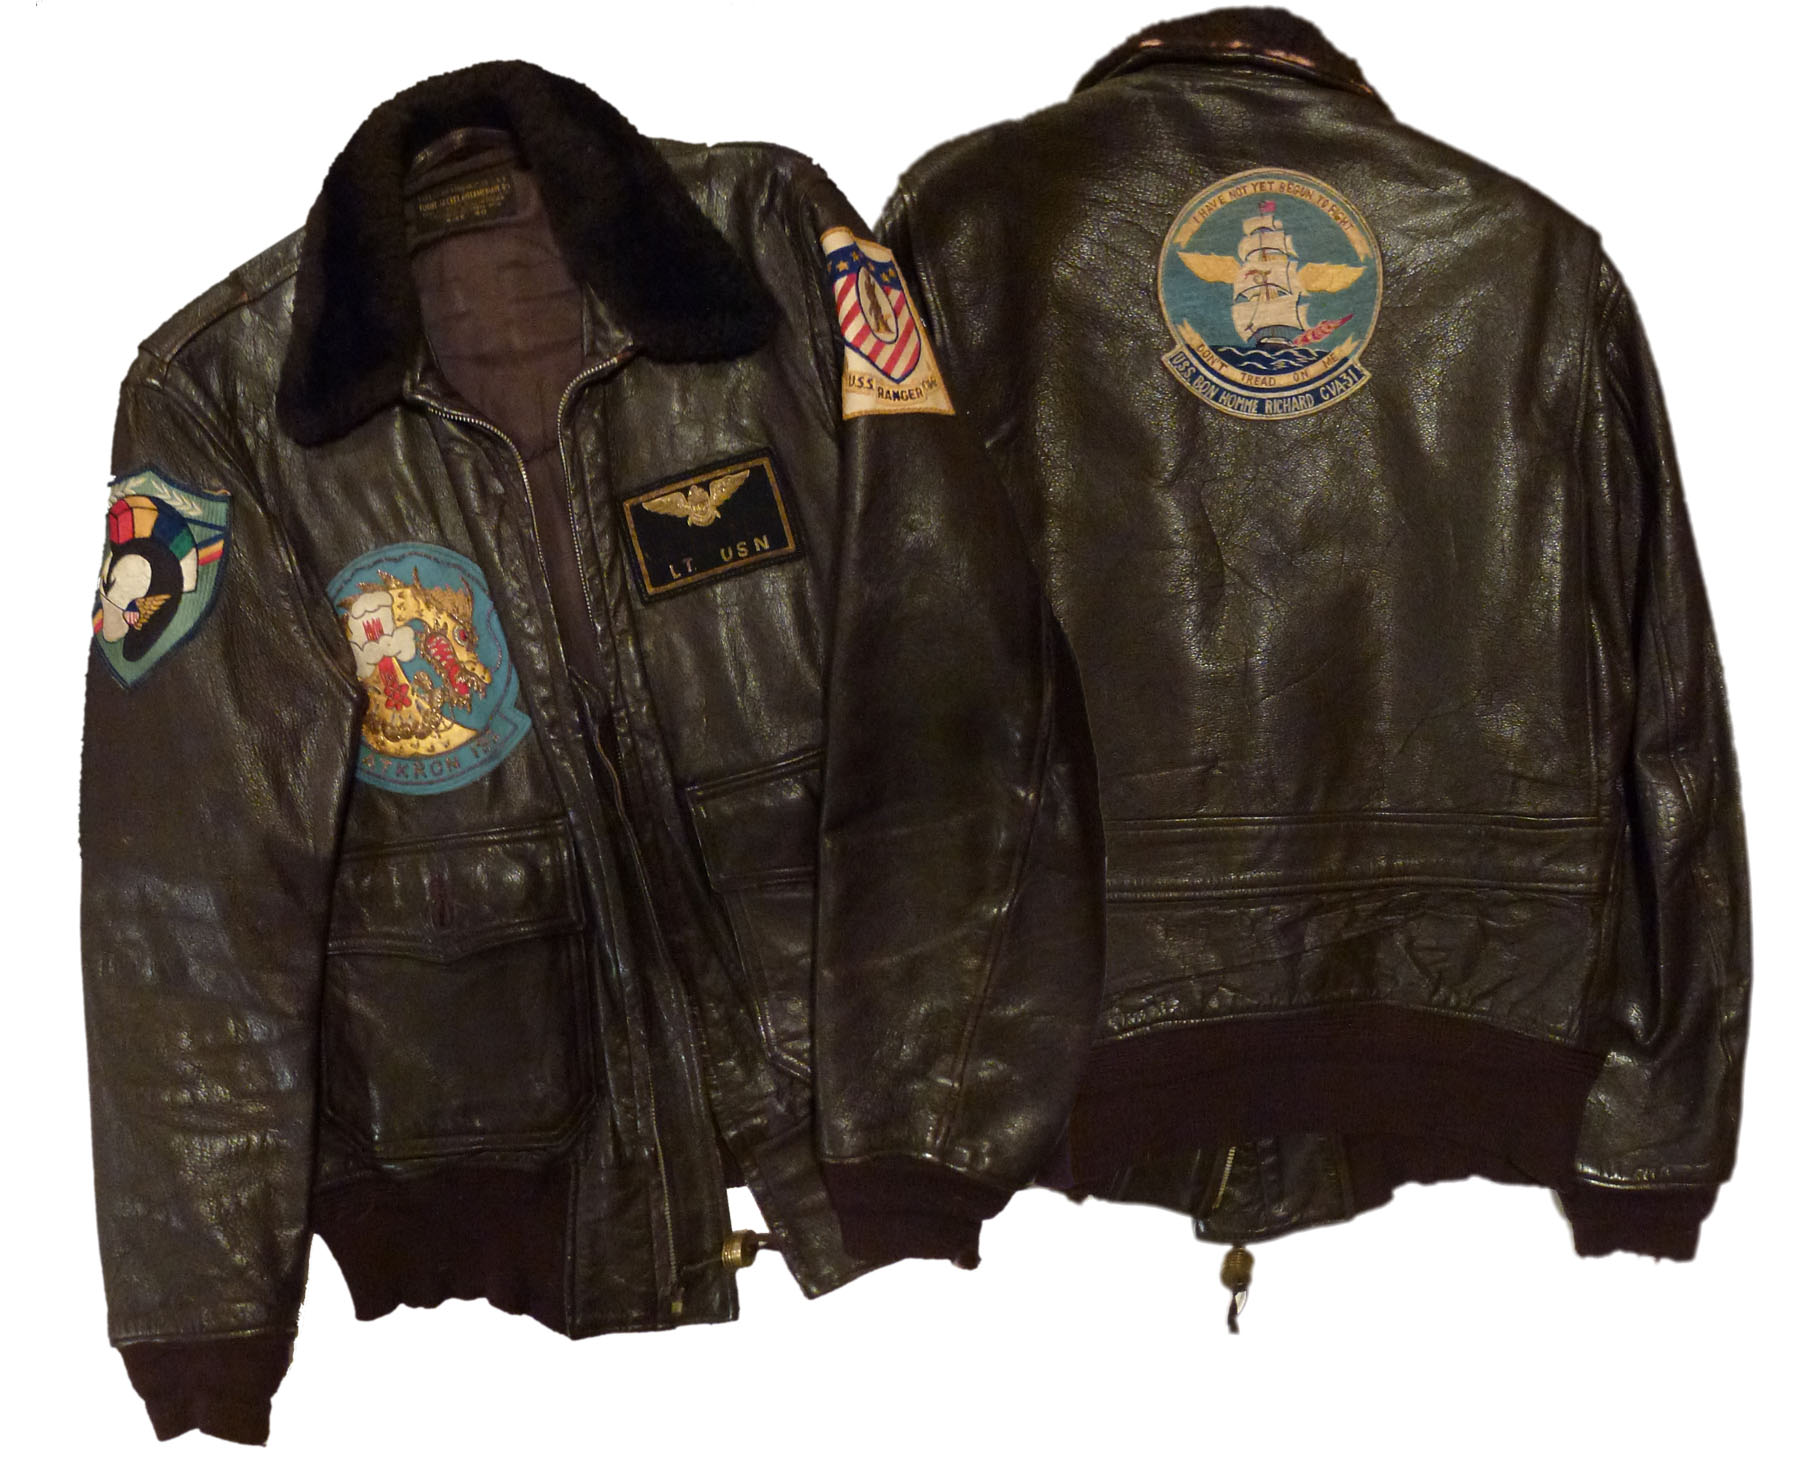 G-1 military flight jacket - Wikipedia